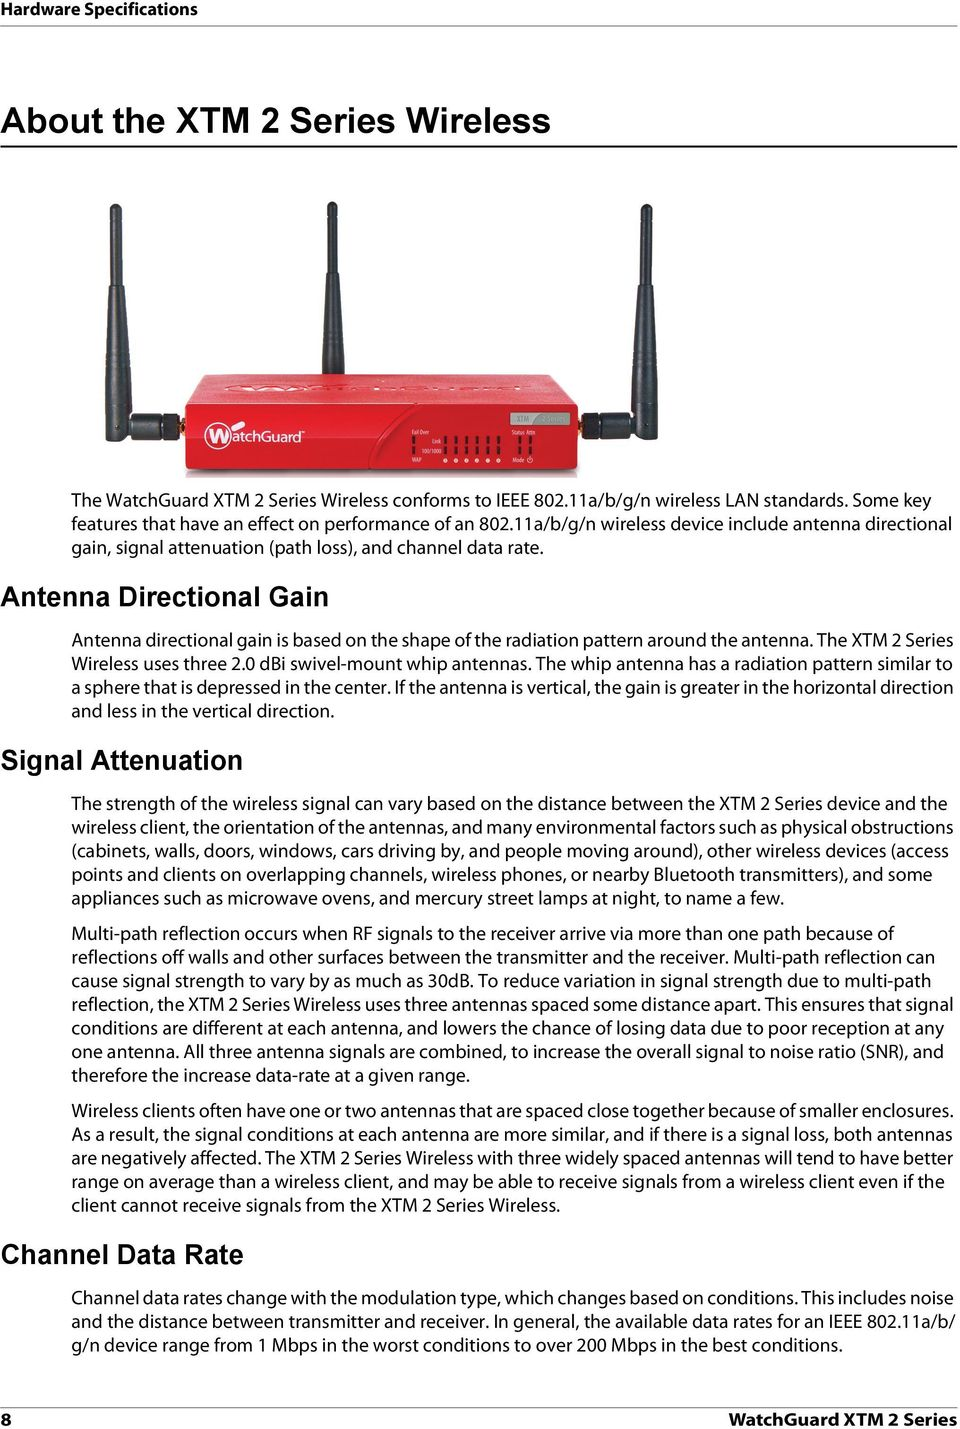 Antenna Directional Gain Antenna directional gain is based on the shape of the radiation pattern around the antenna. The XTM 2 Series Wireless uses three 2.0 dbi swivel-mount whip antennas.